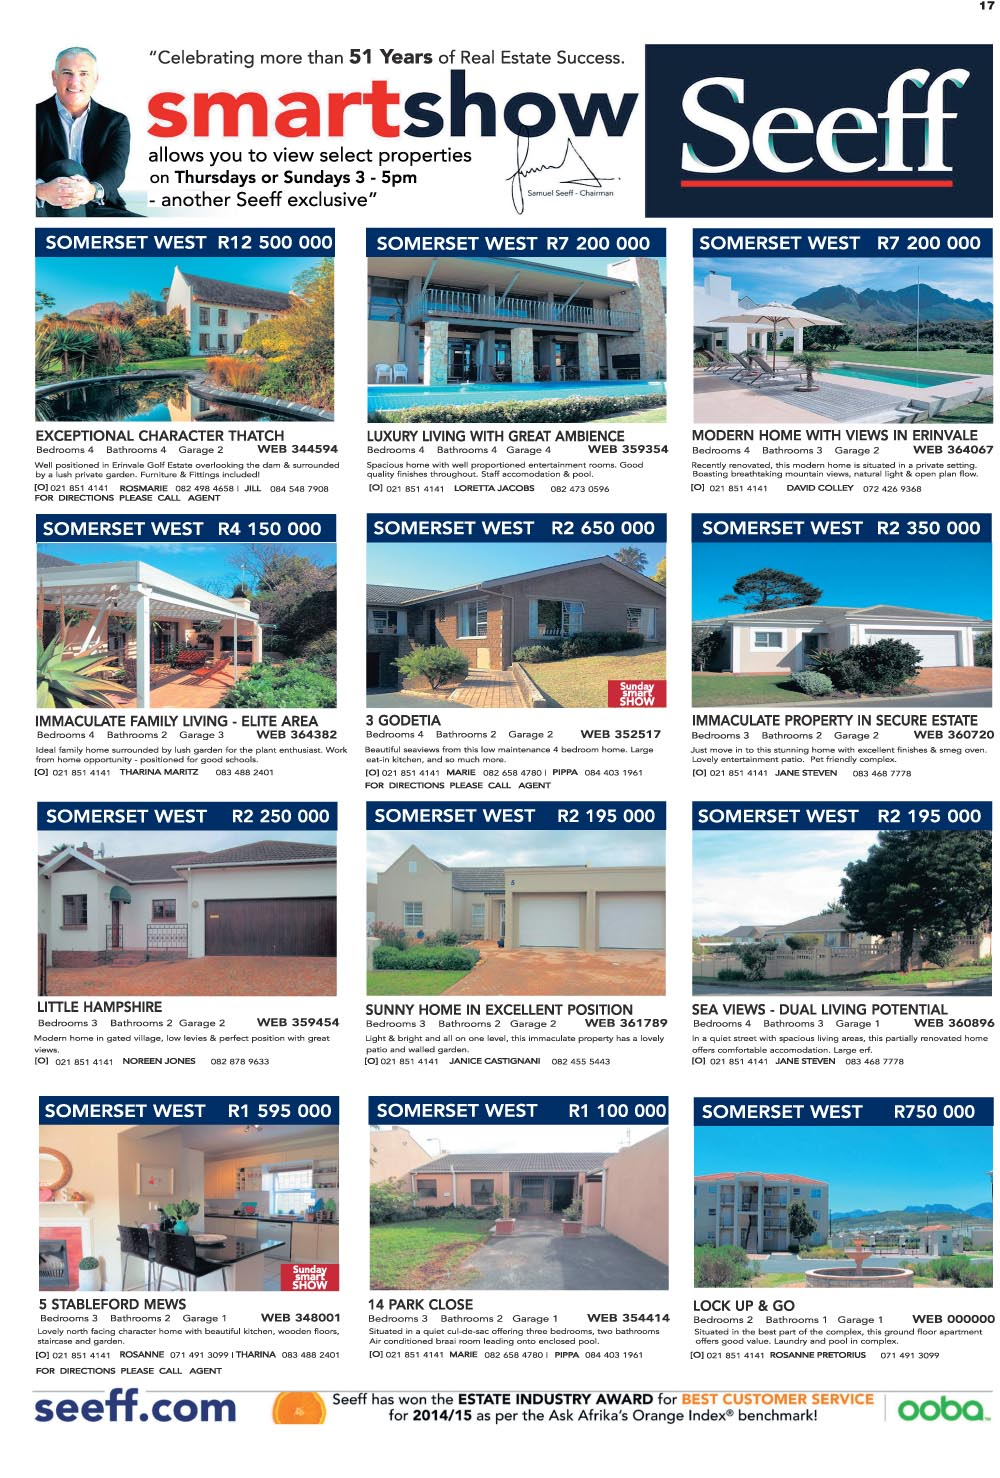 You are browsing images from the article: Property Selection-September 23 2015